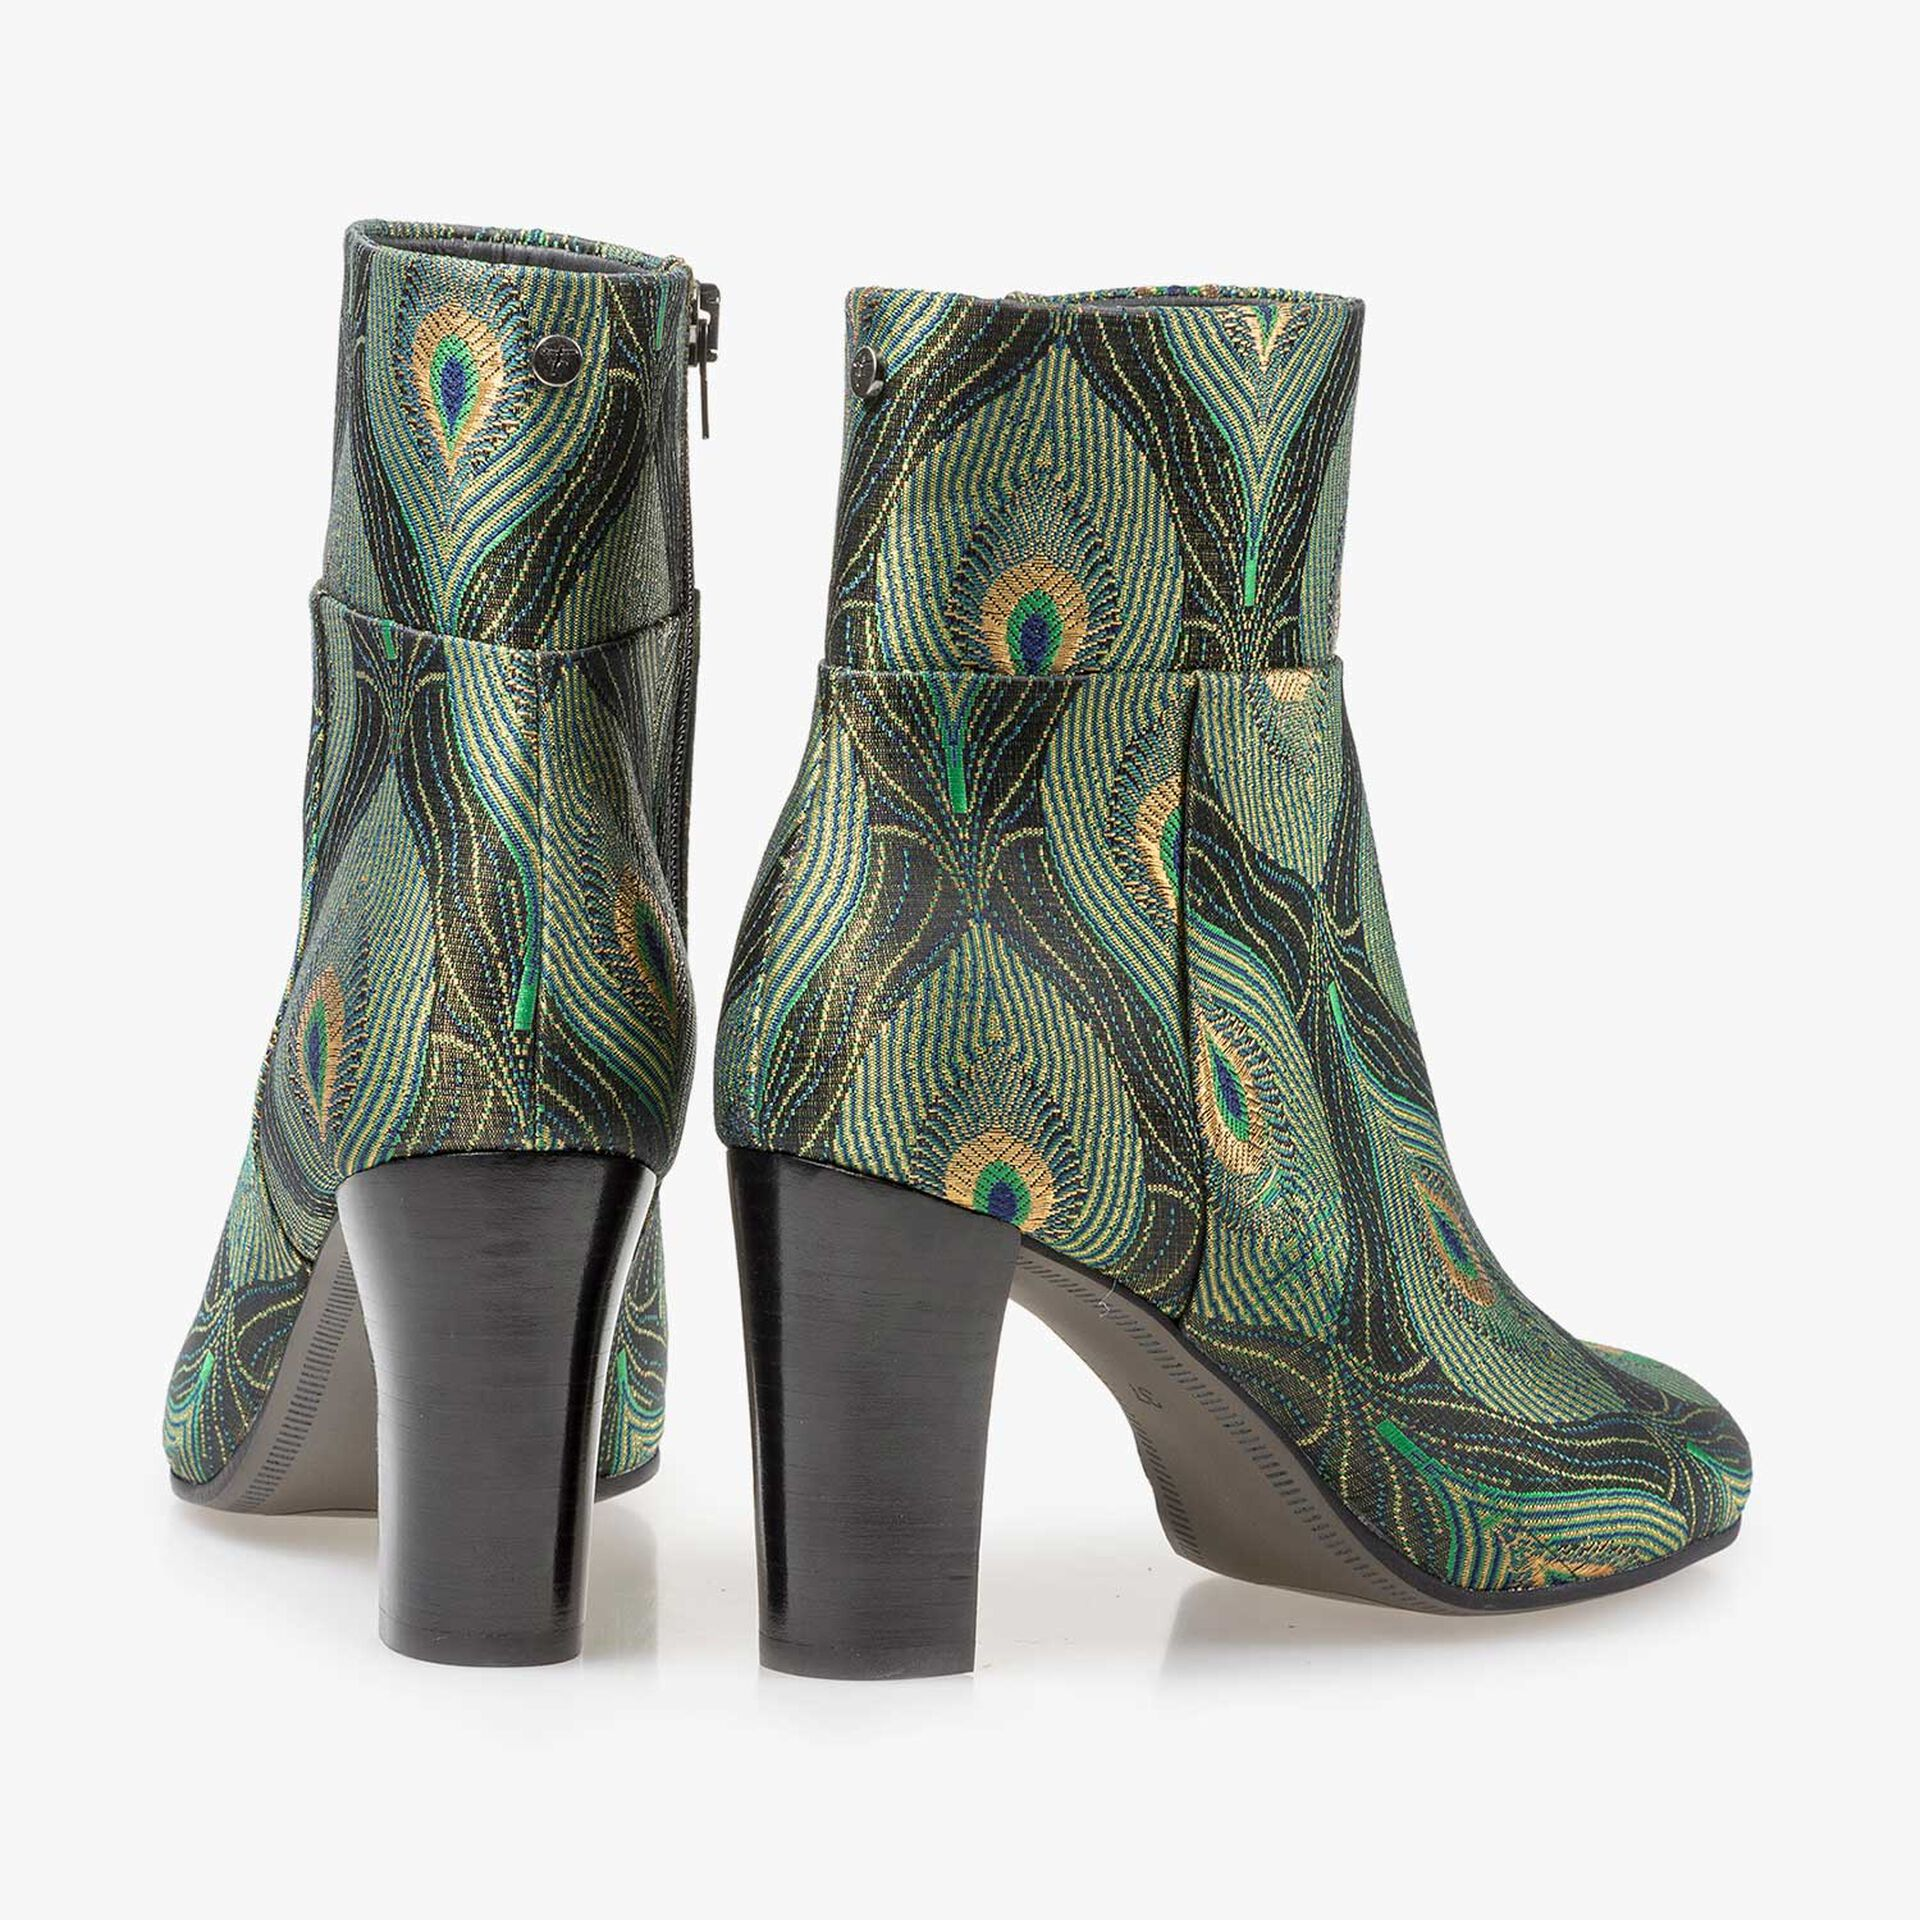 Ankle boots with peacock print